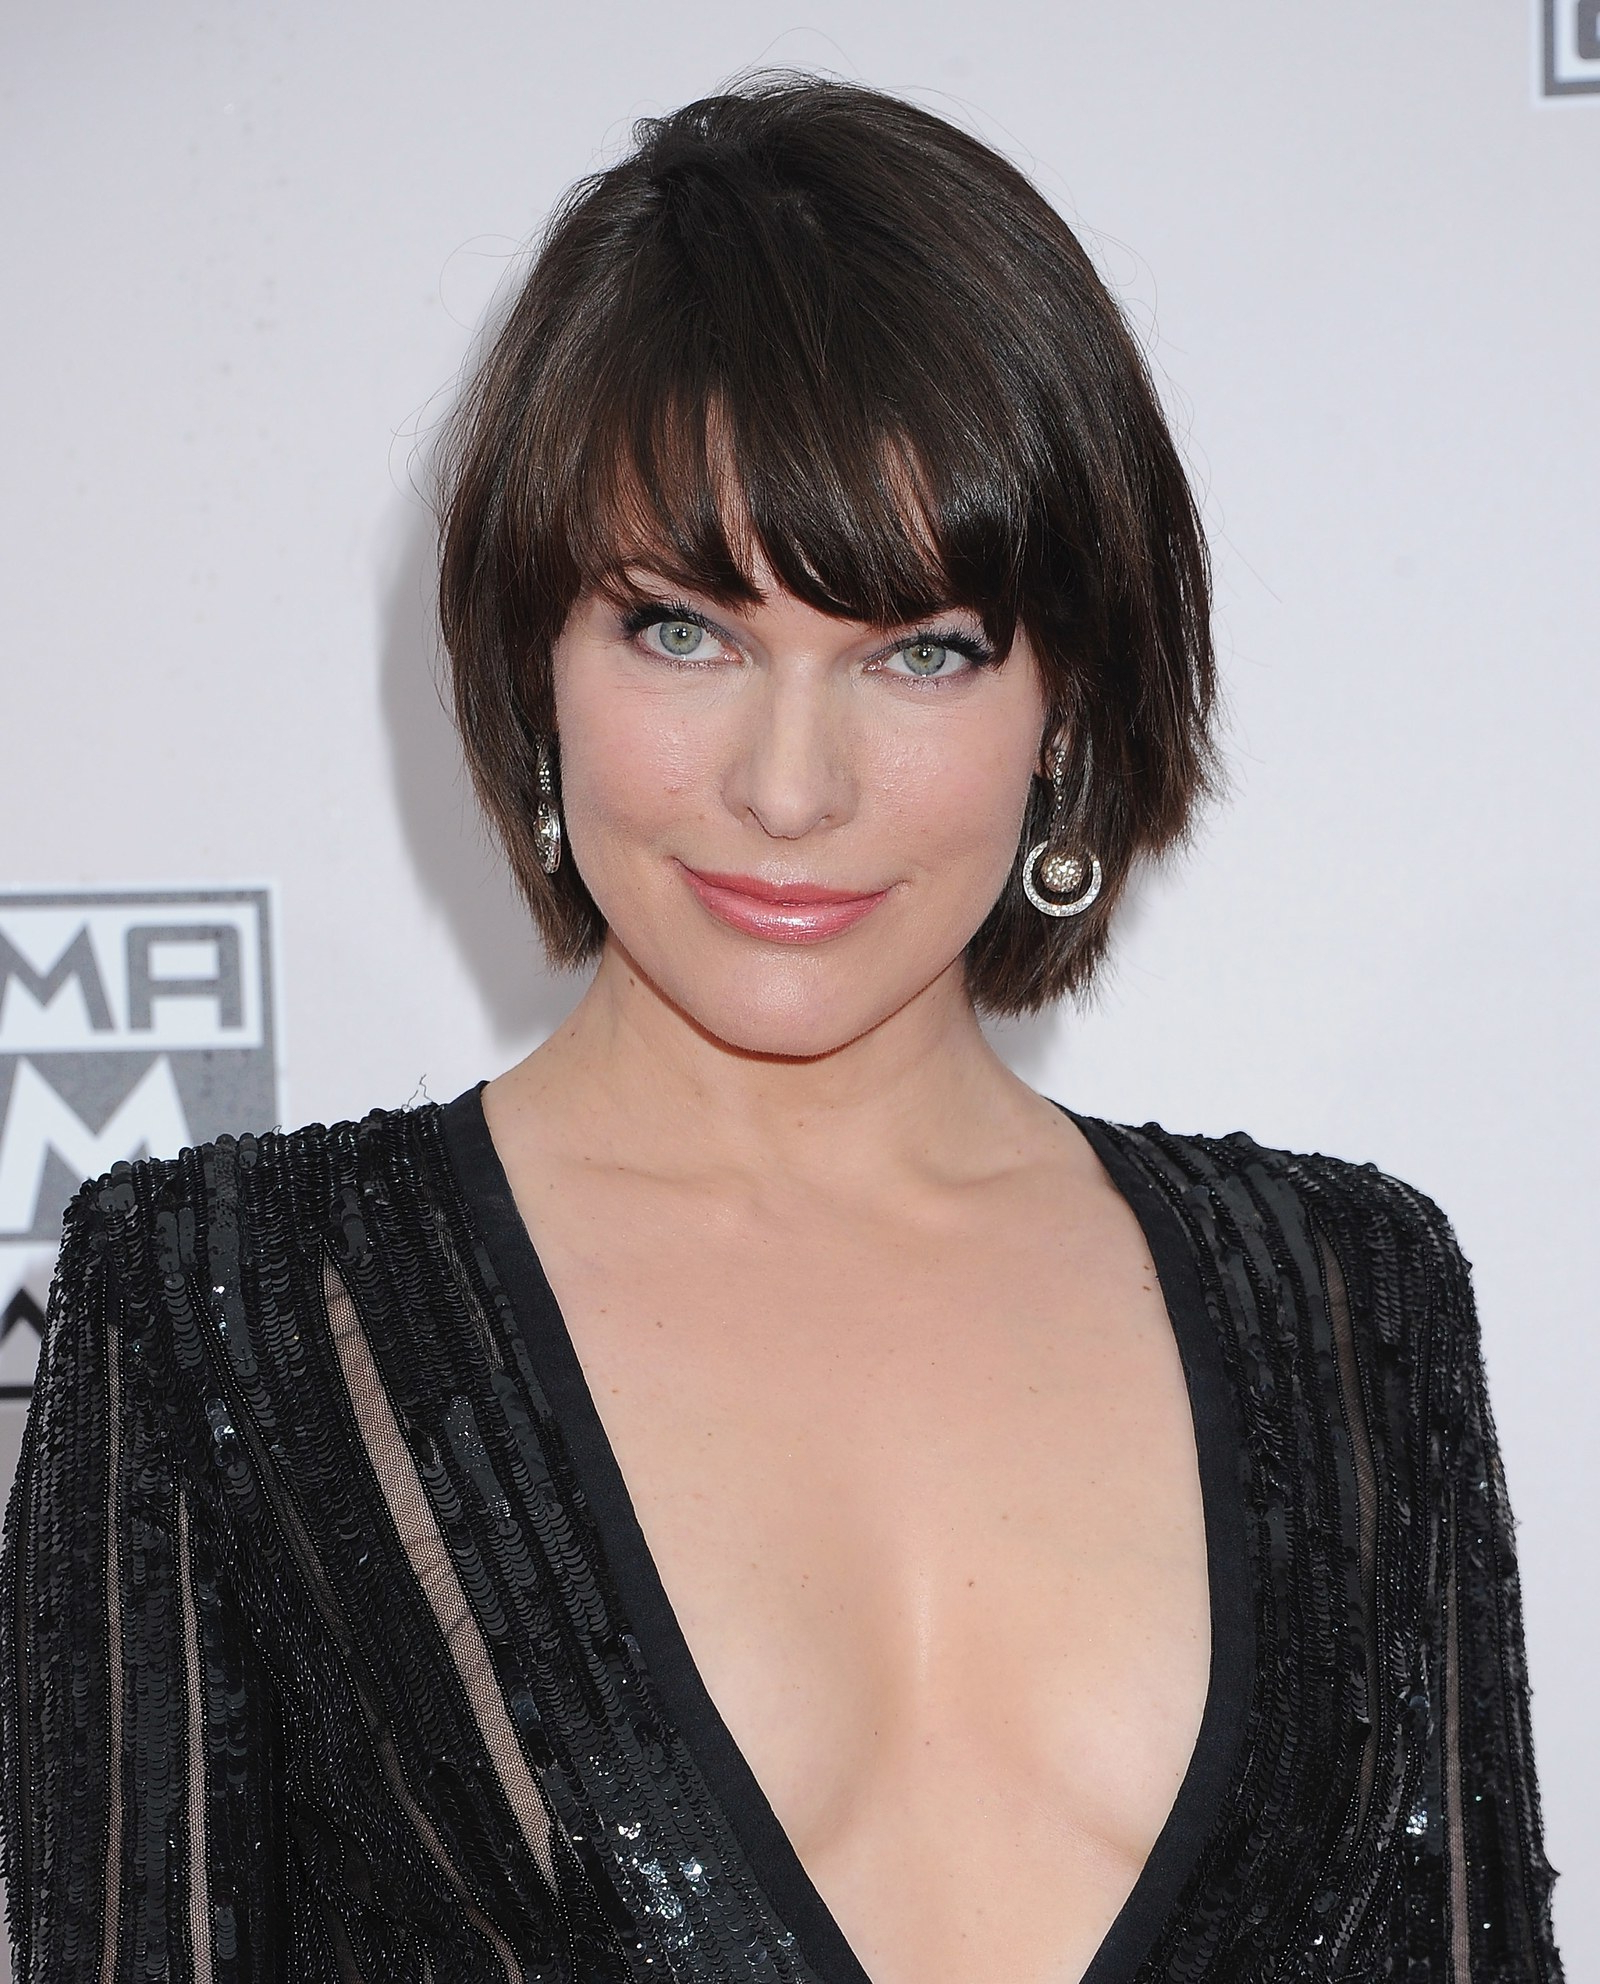 50 Cute Short Hairstyle And Haircut Ideas Worth Chopping Your Hair Regarding Face Framing Short Hairstyles (View 20 of 25)